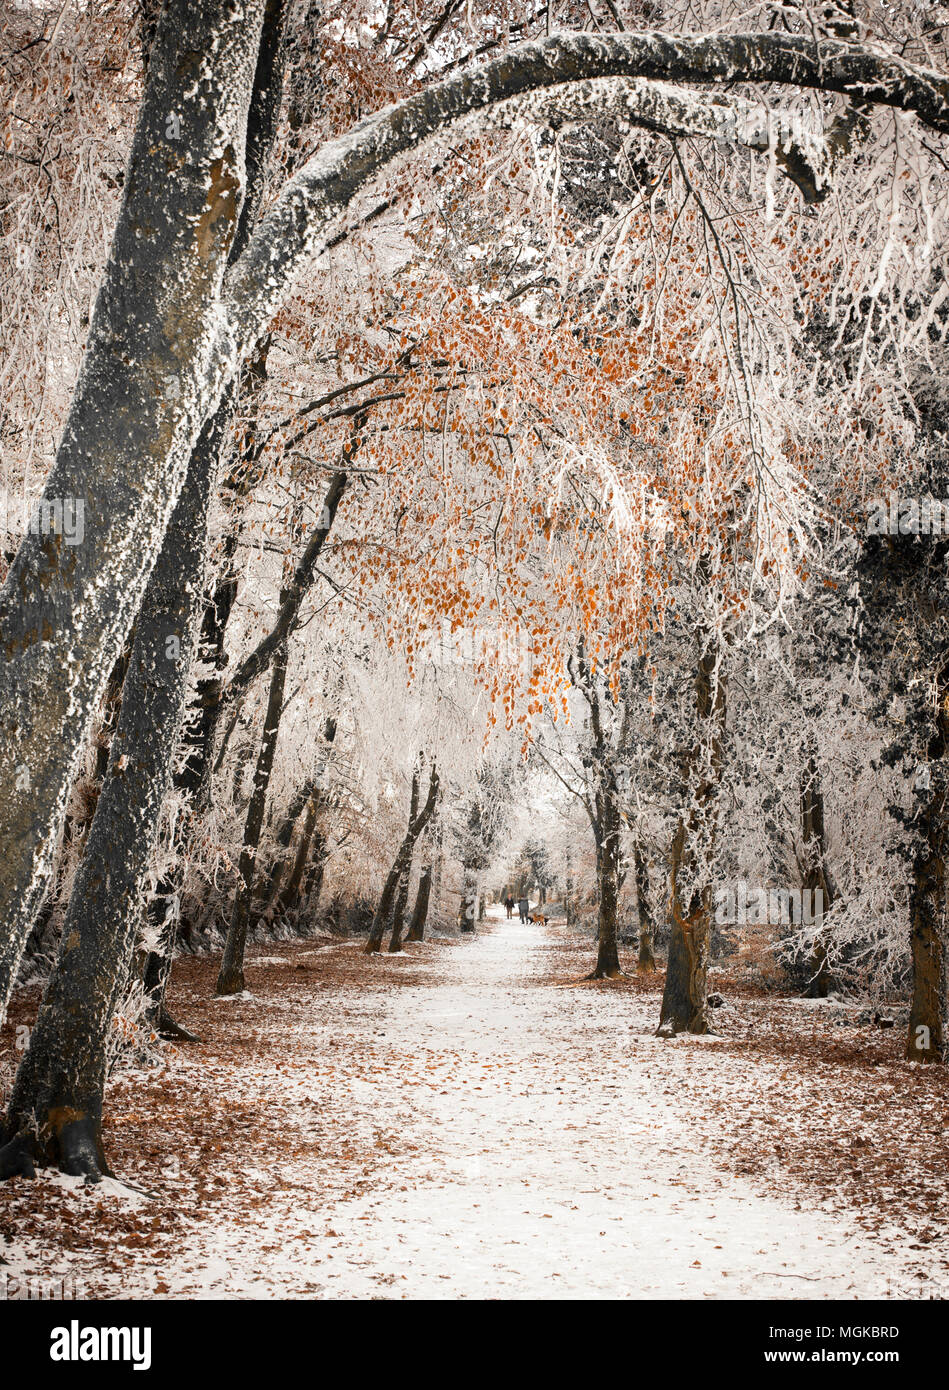 People waling their dod on a winter morning under a canopy of trees frozen with hoar frost - Stock Image